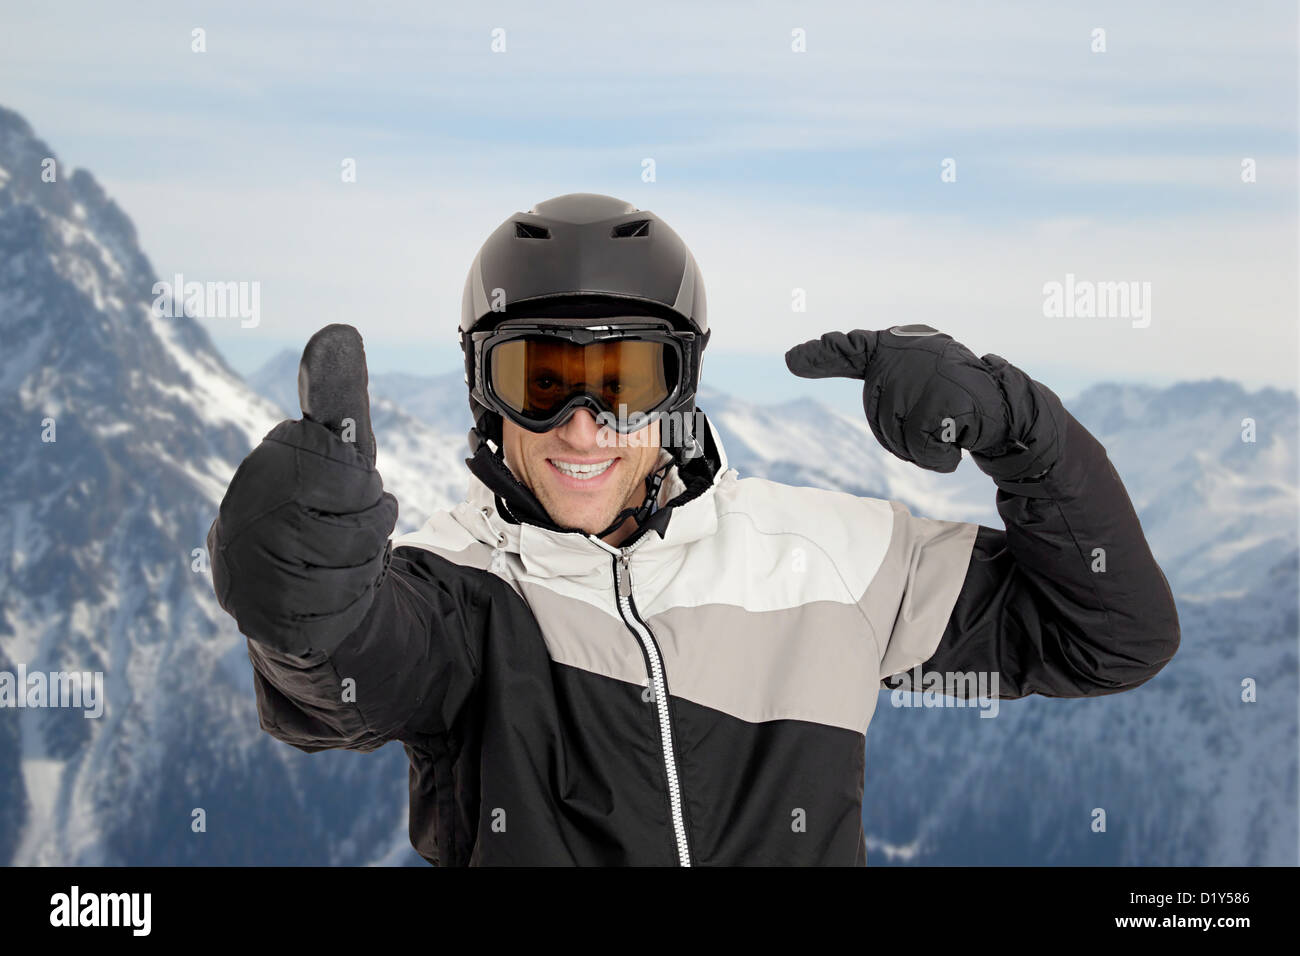 Skier pointing on his helmet in front of mountains - Stock Image